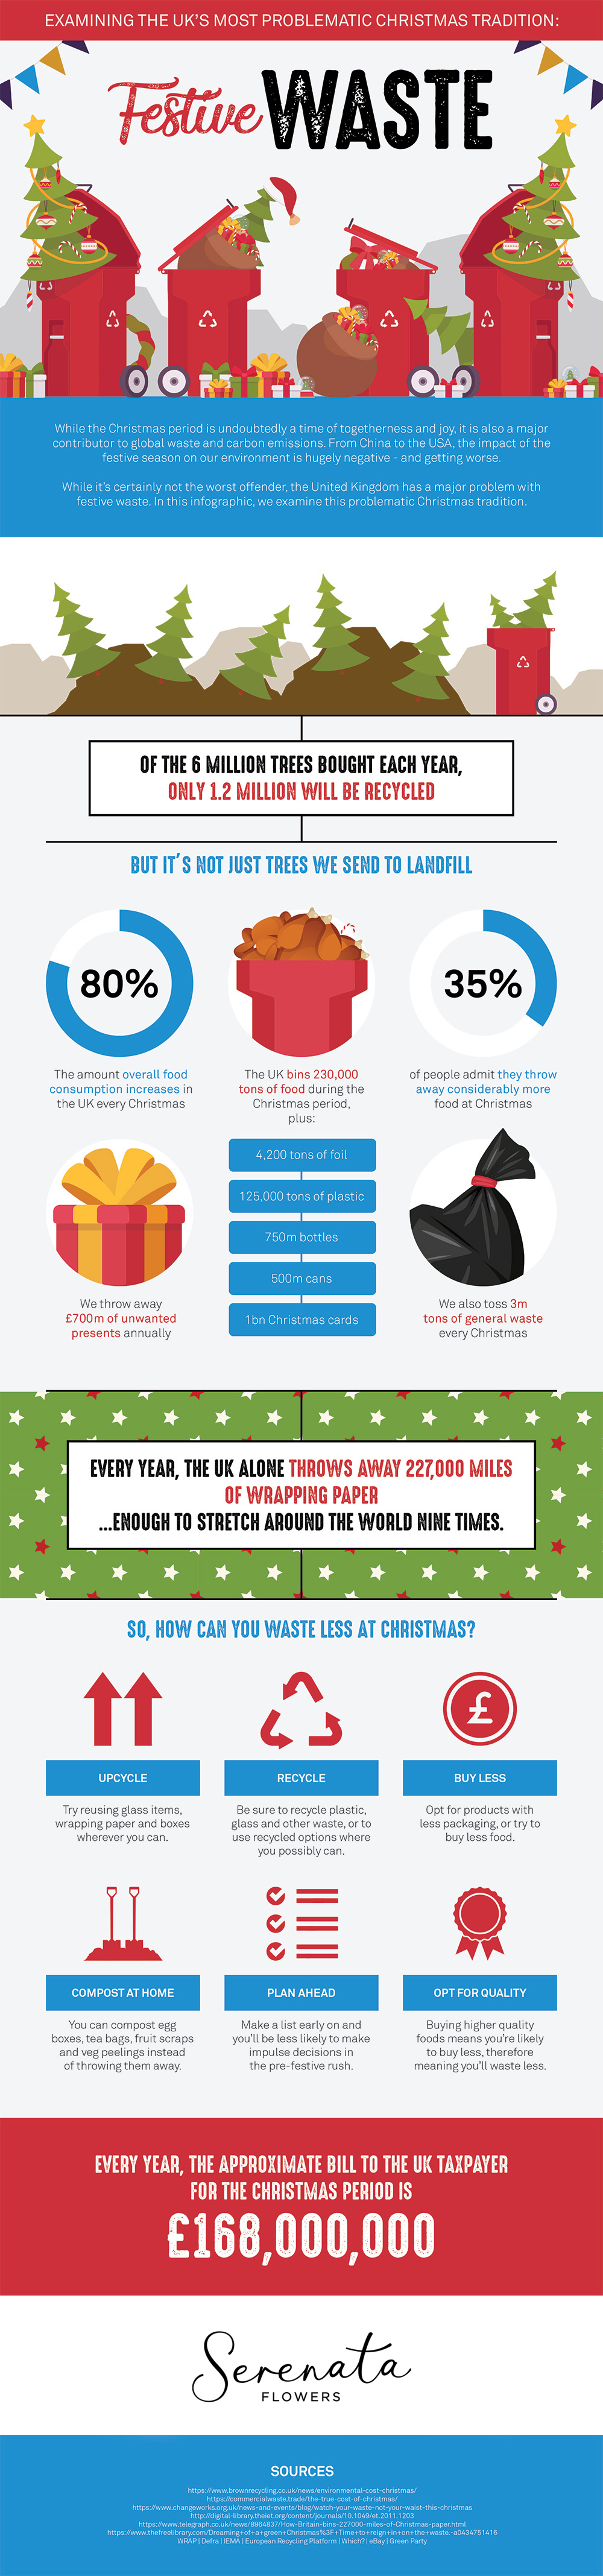 infographic Christmas waste